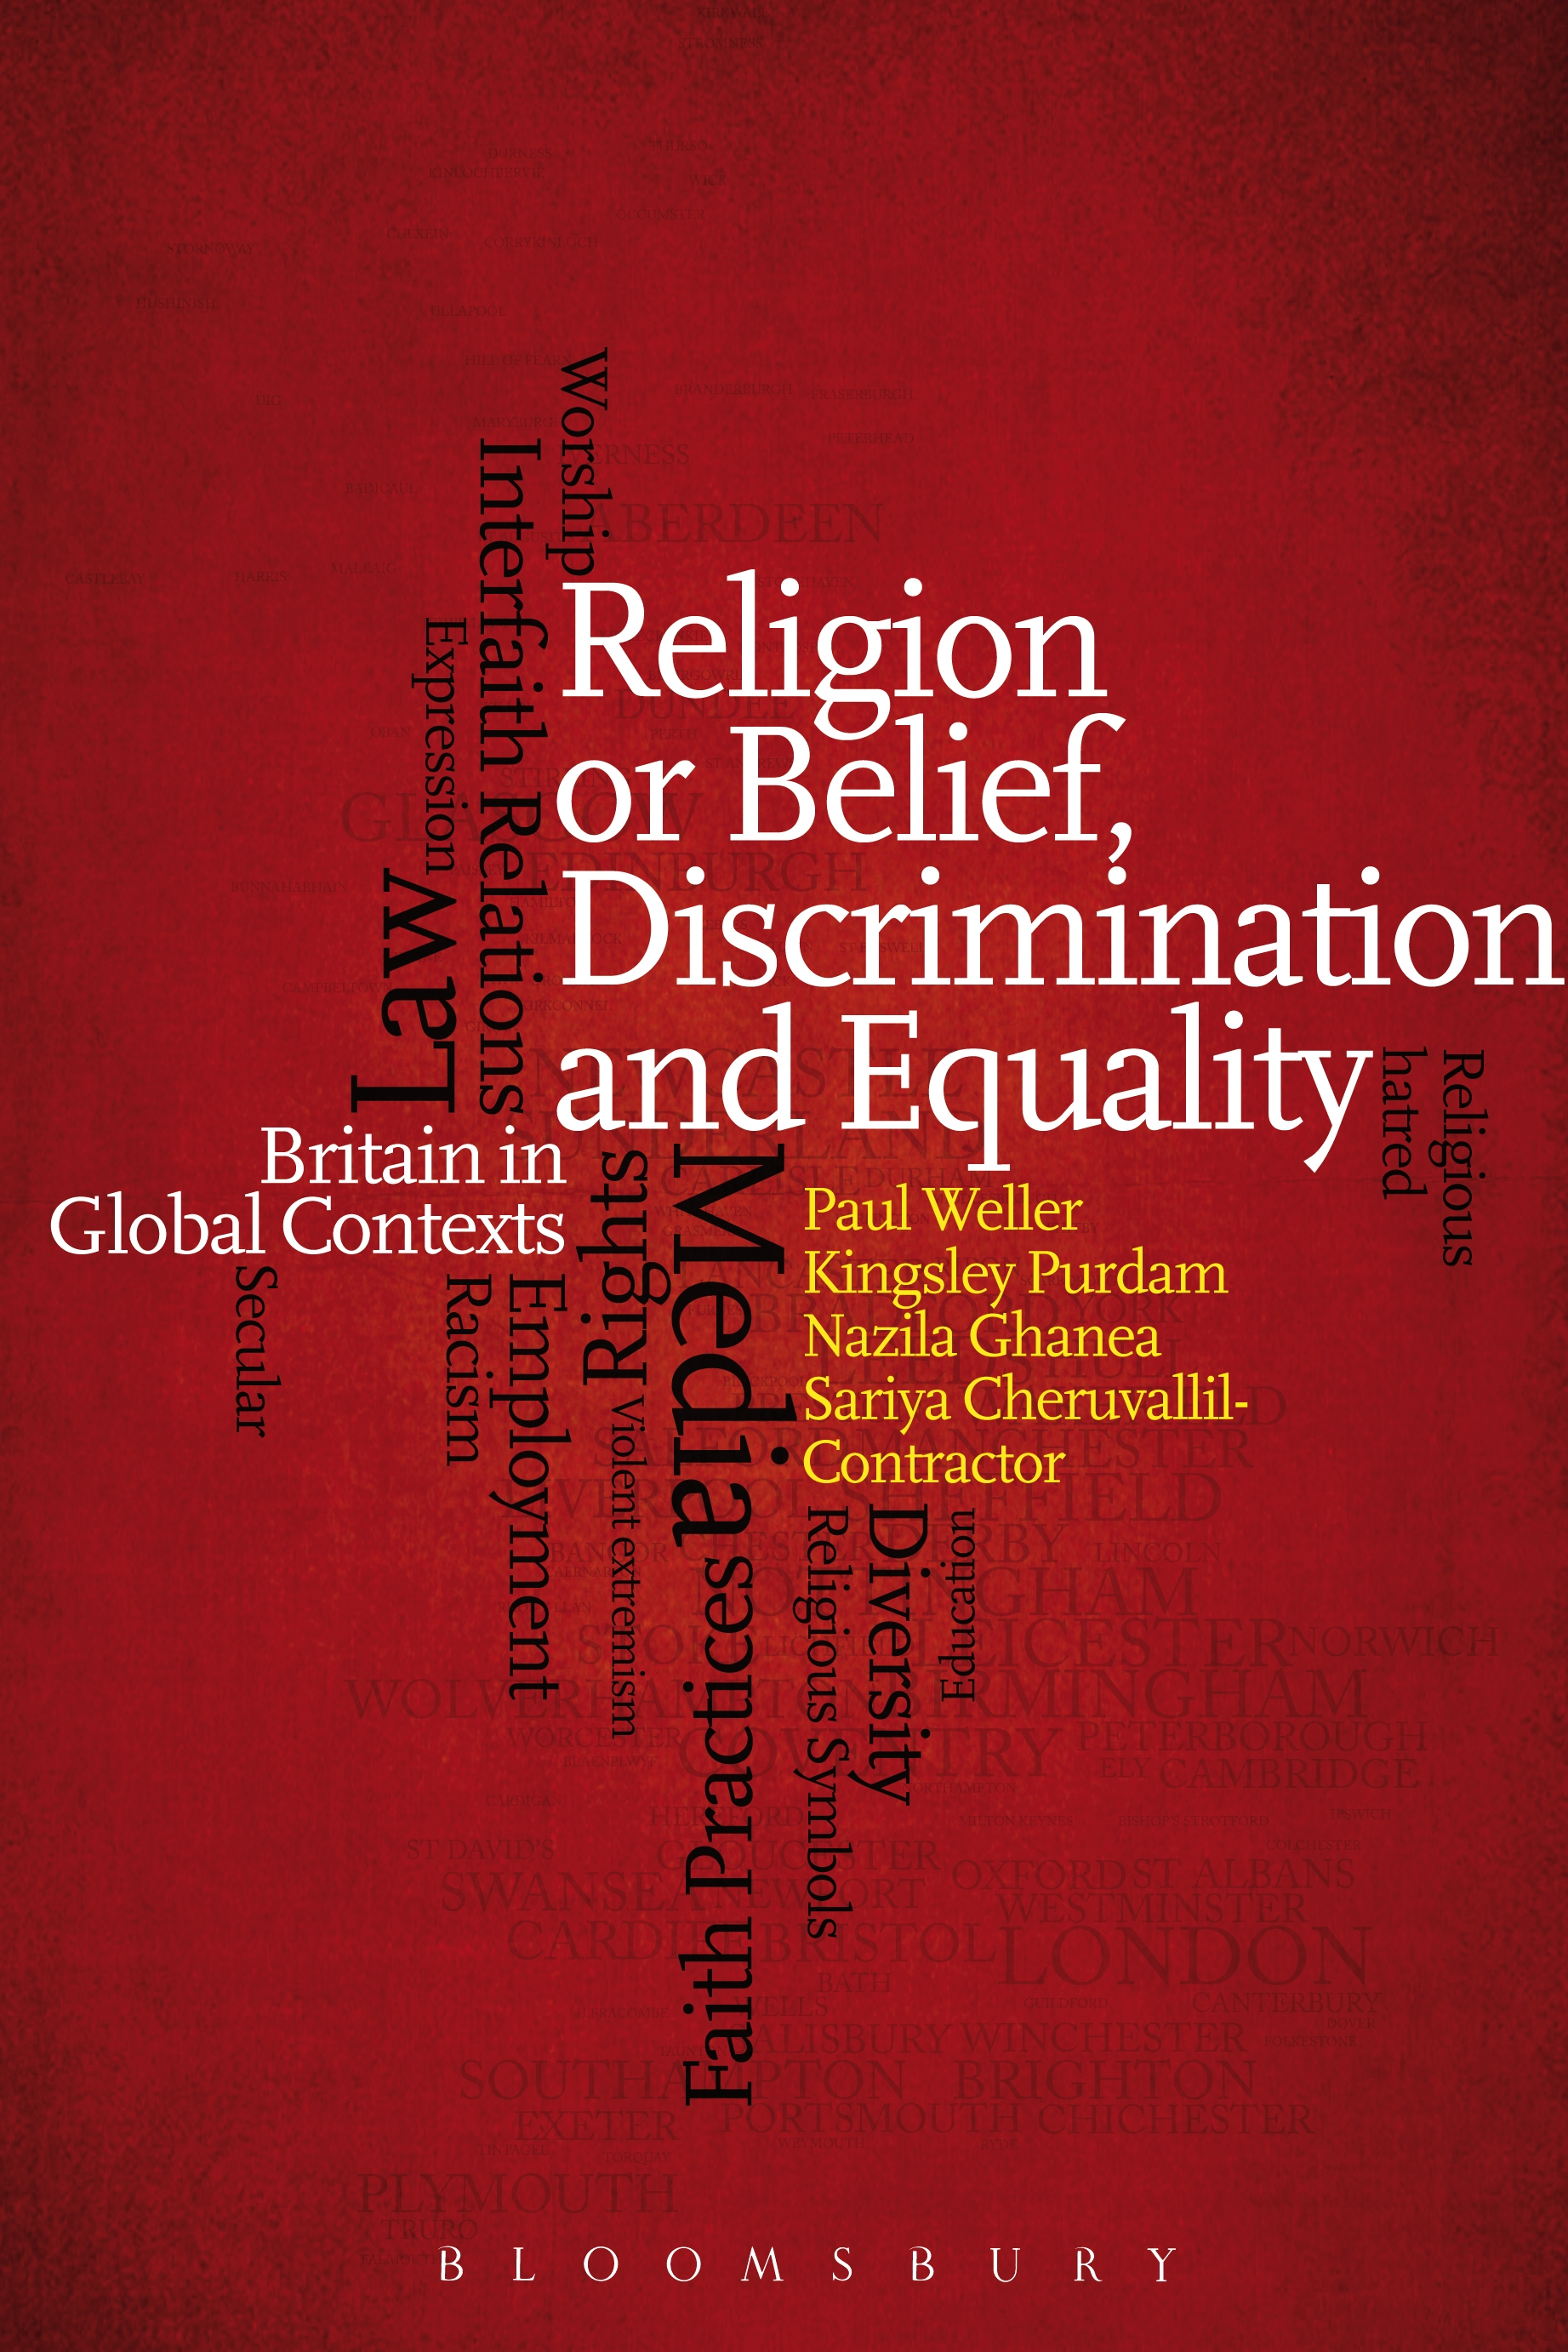 Religion or Belief, Discrimination and Equality Britain in Global Contexts